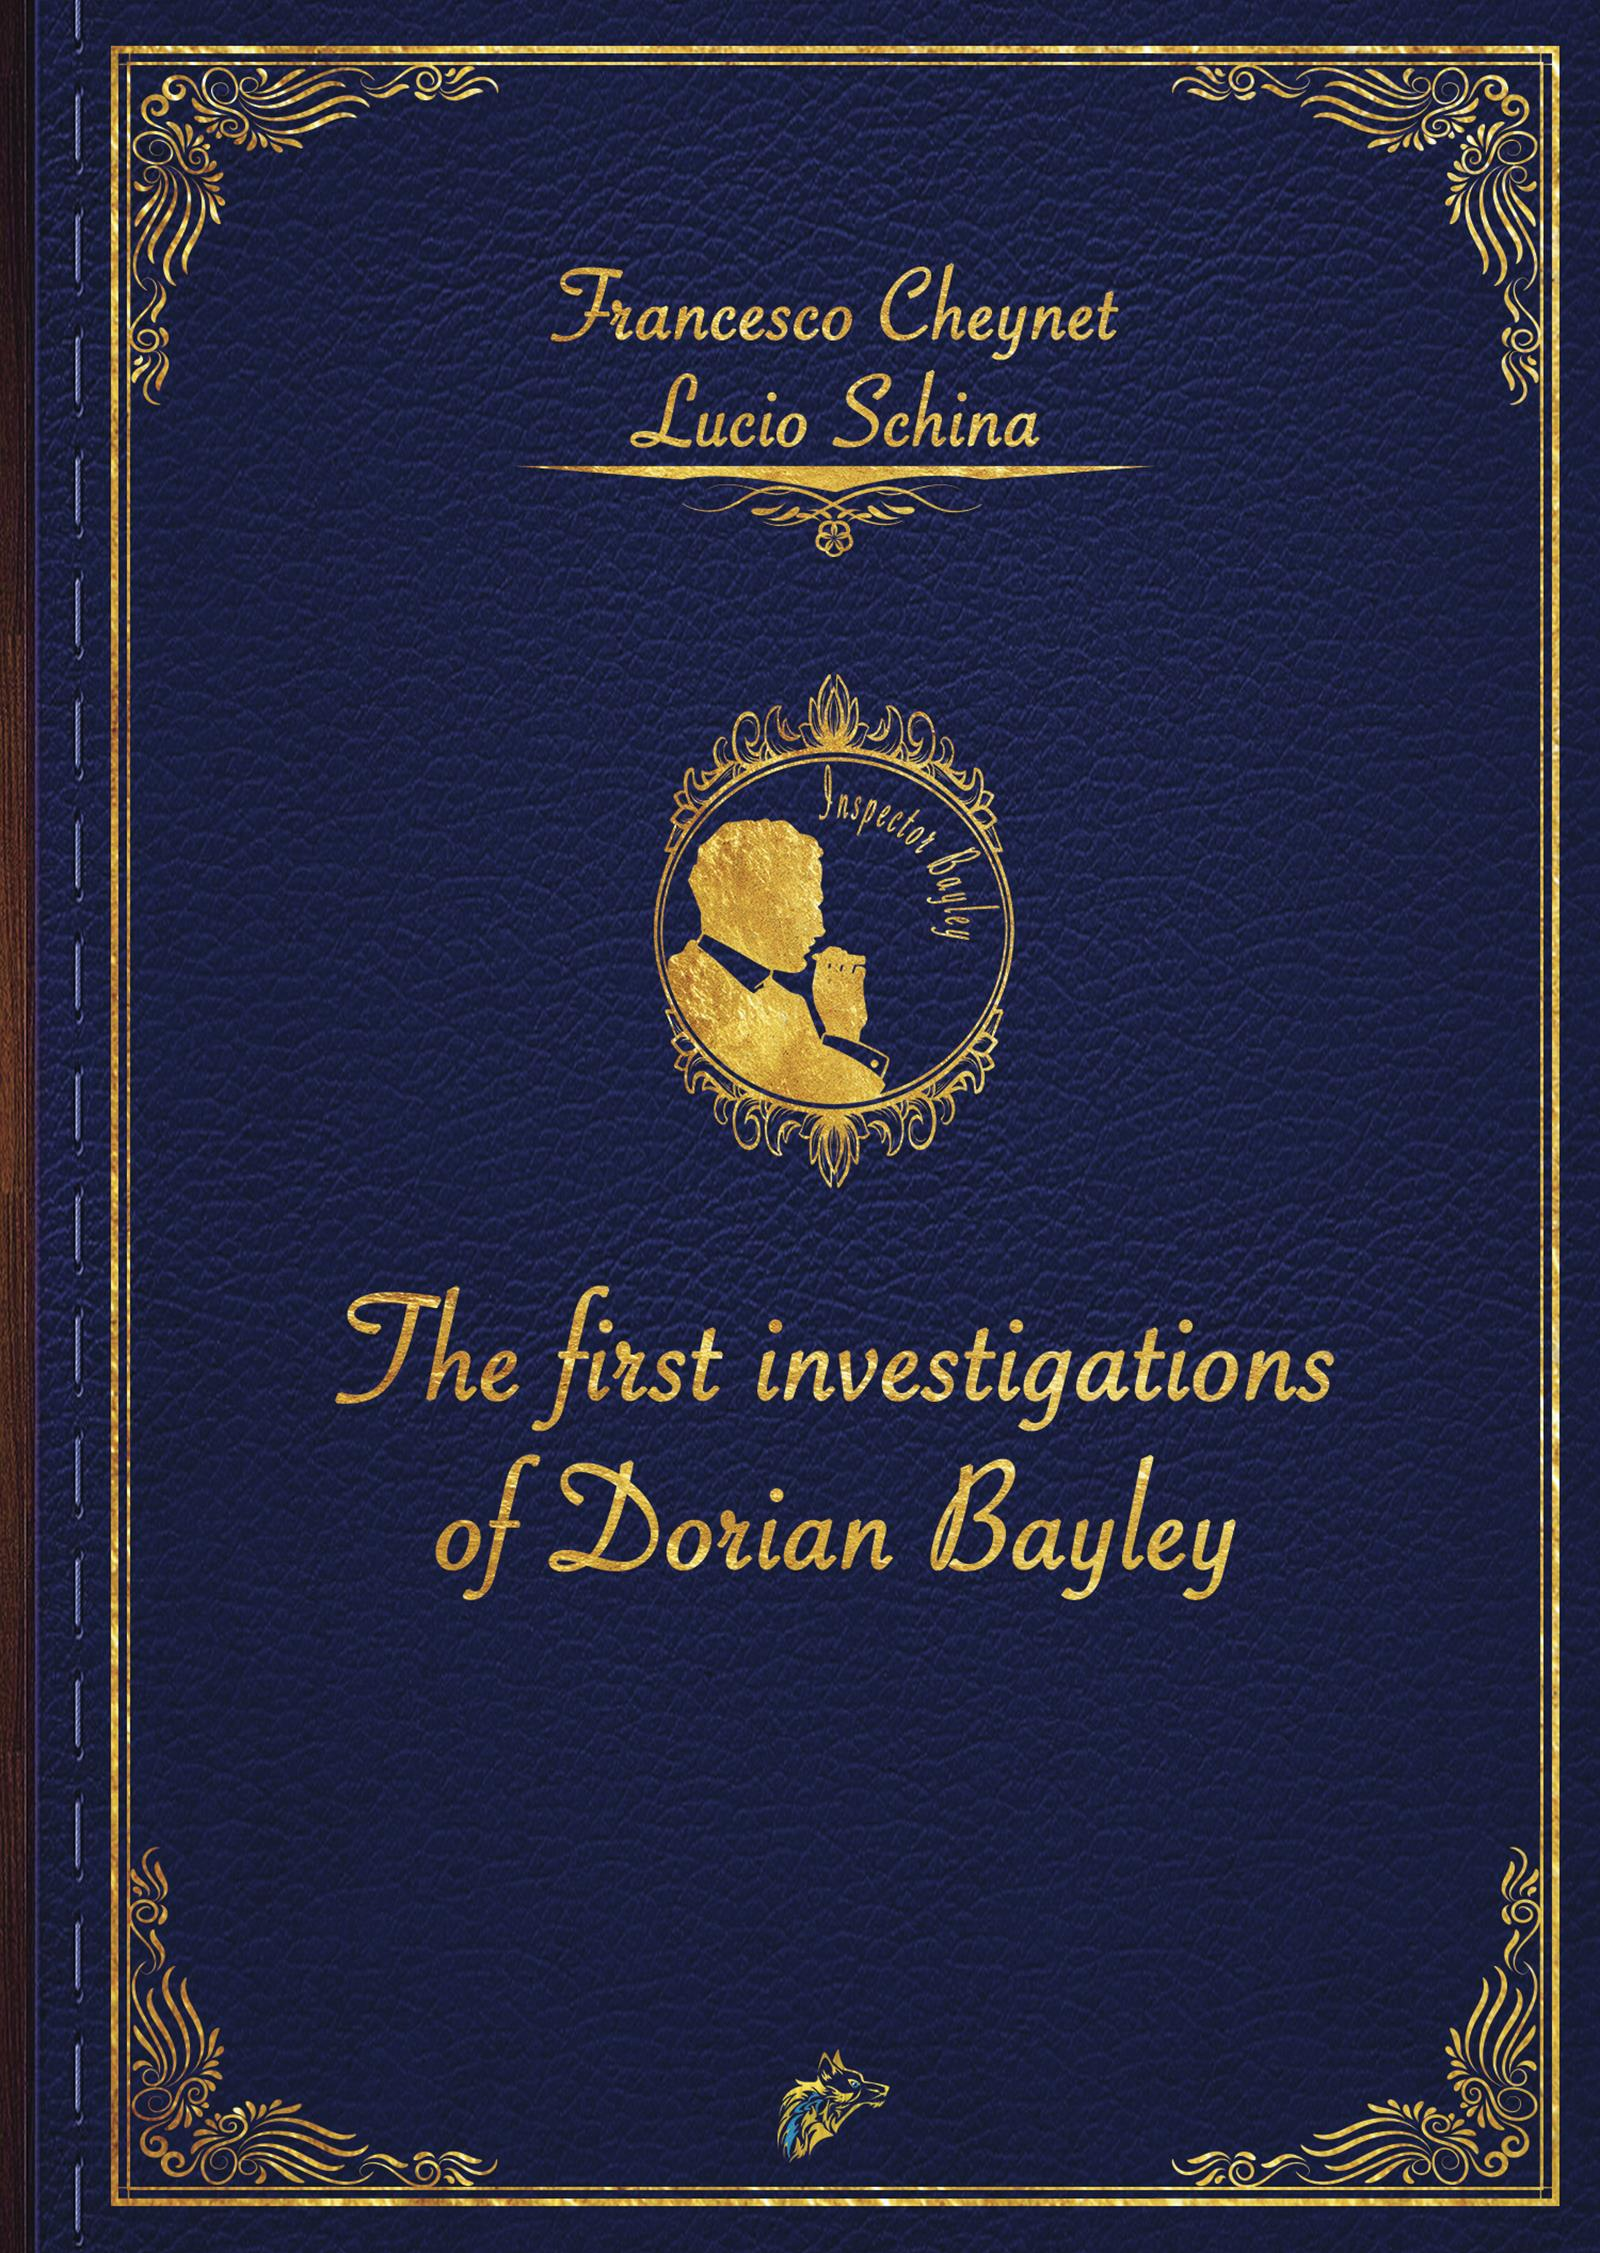 The first investigation of Dorian Baylei